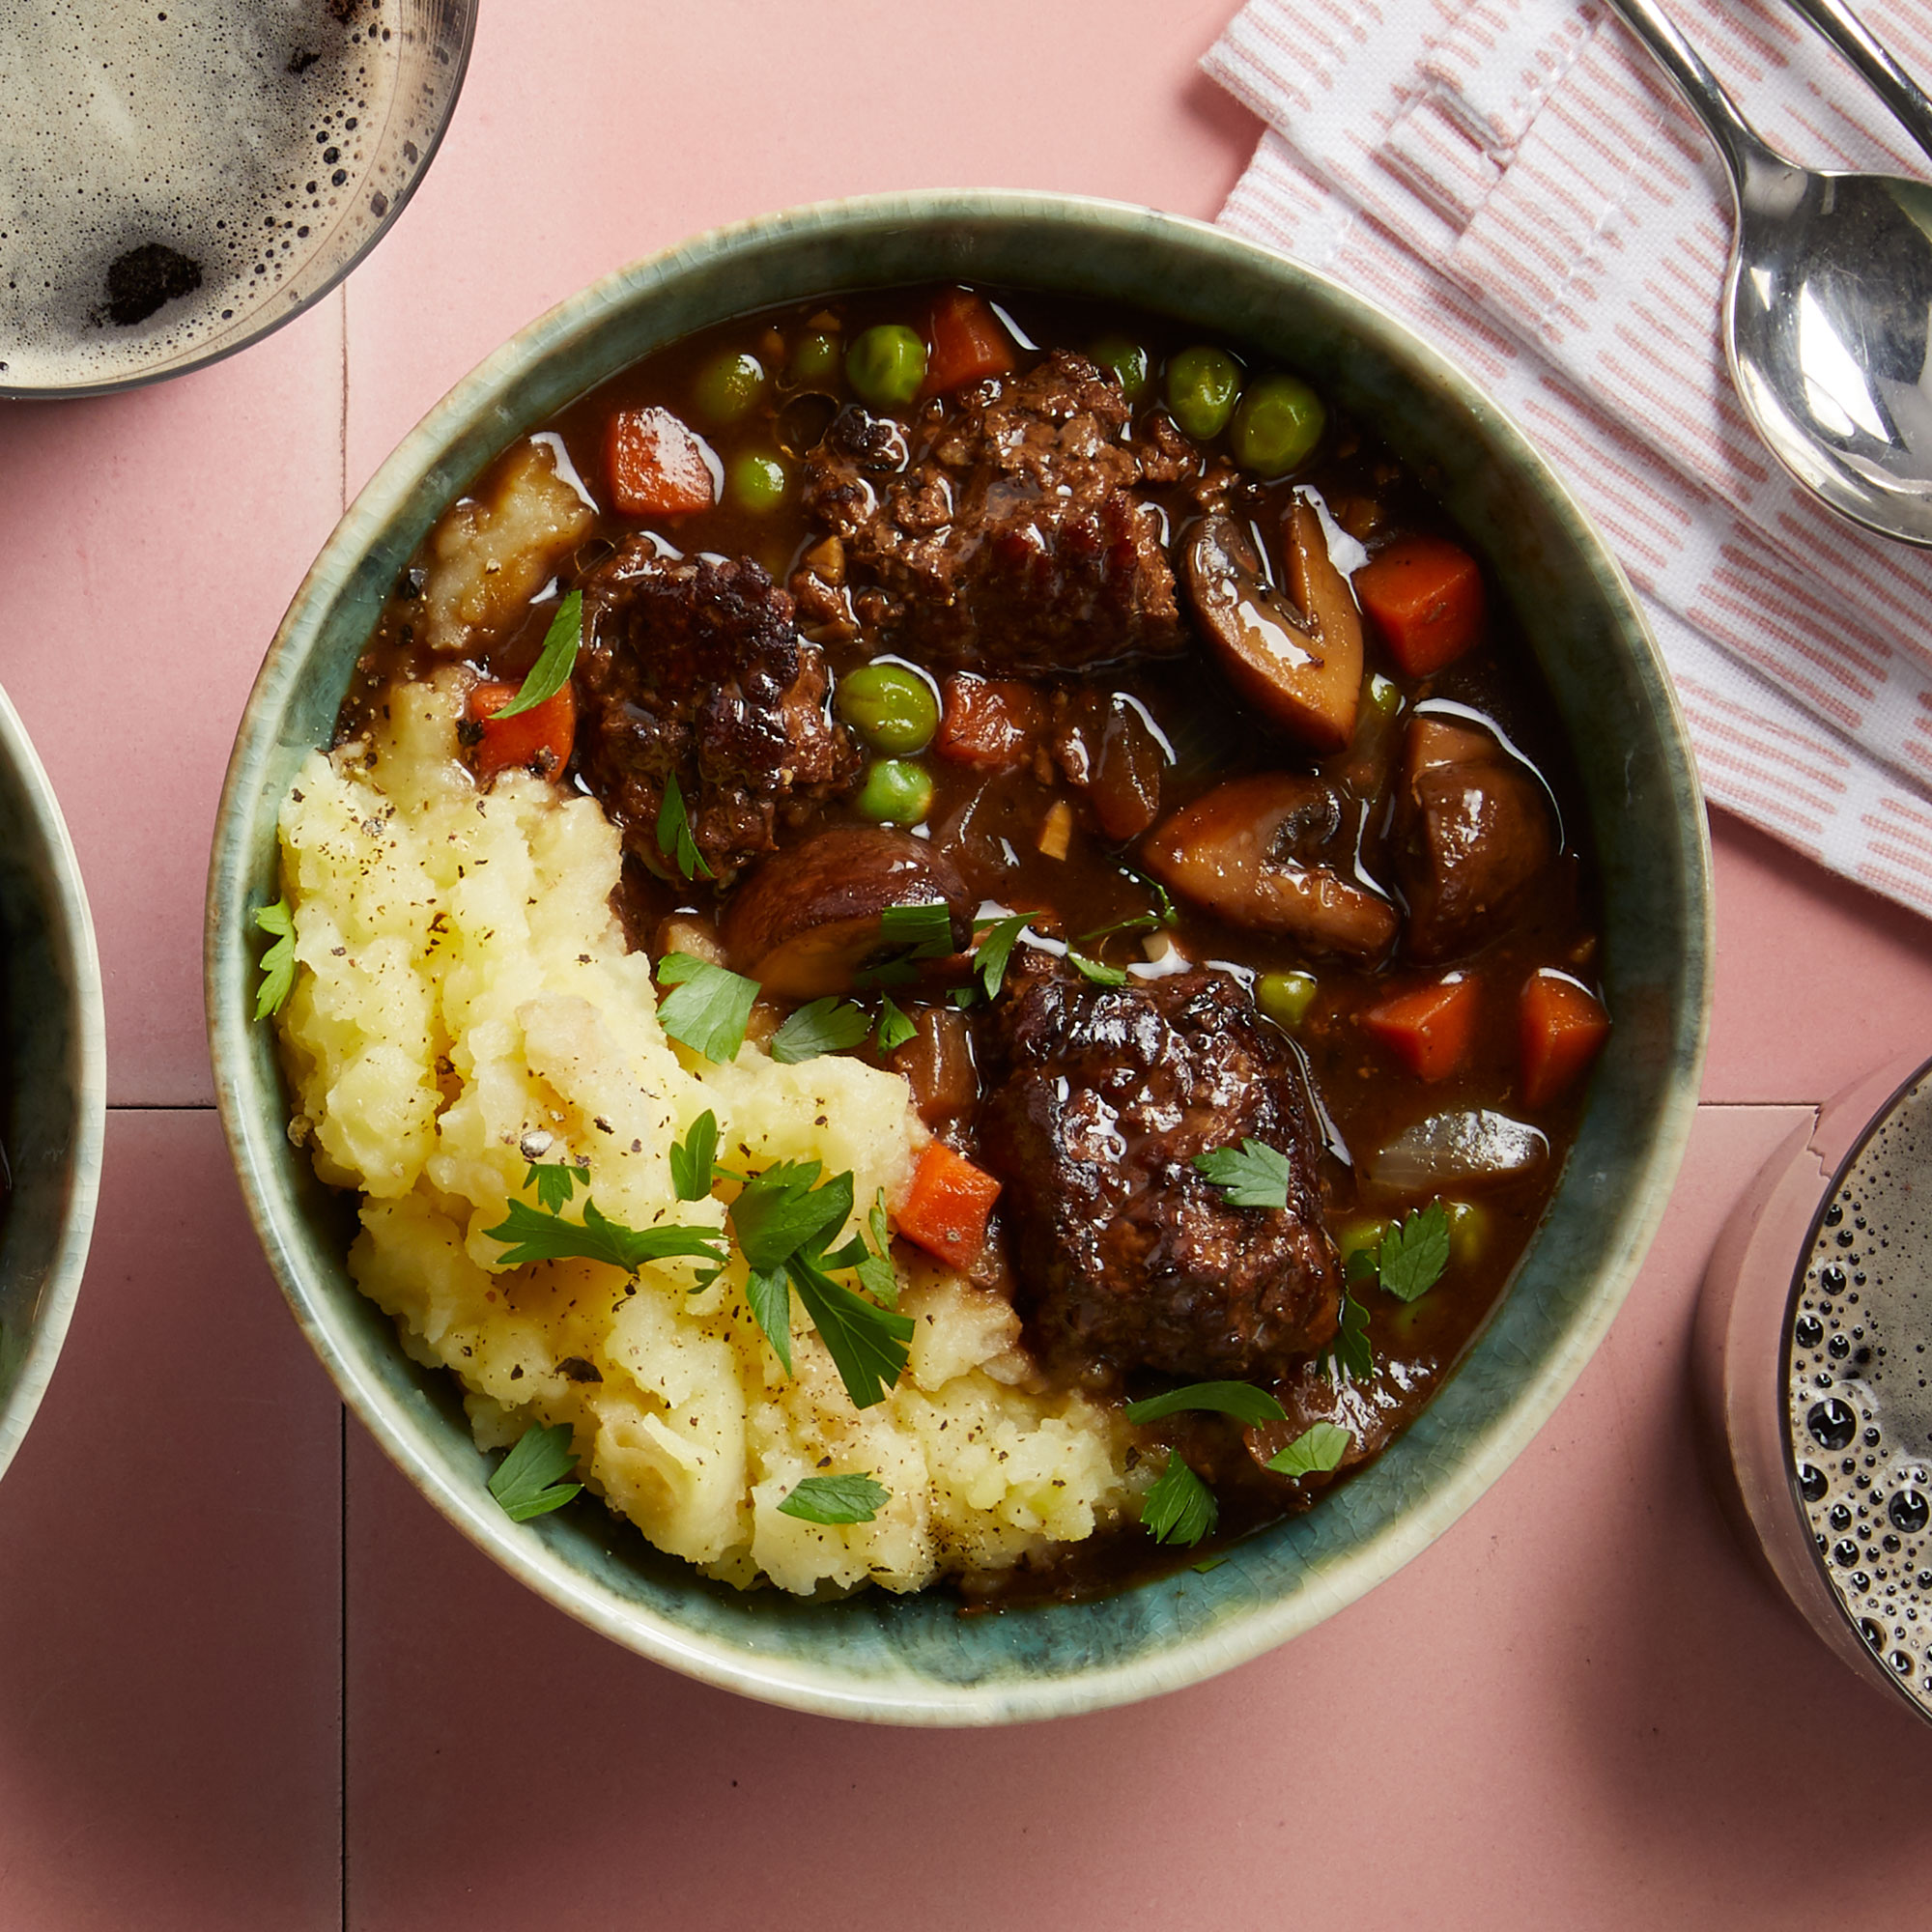 Beef & Mushroom Stew with Mashed Potatoes